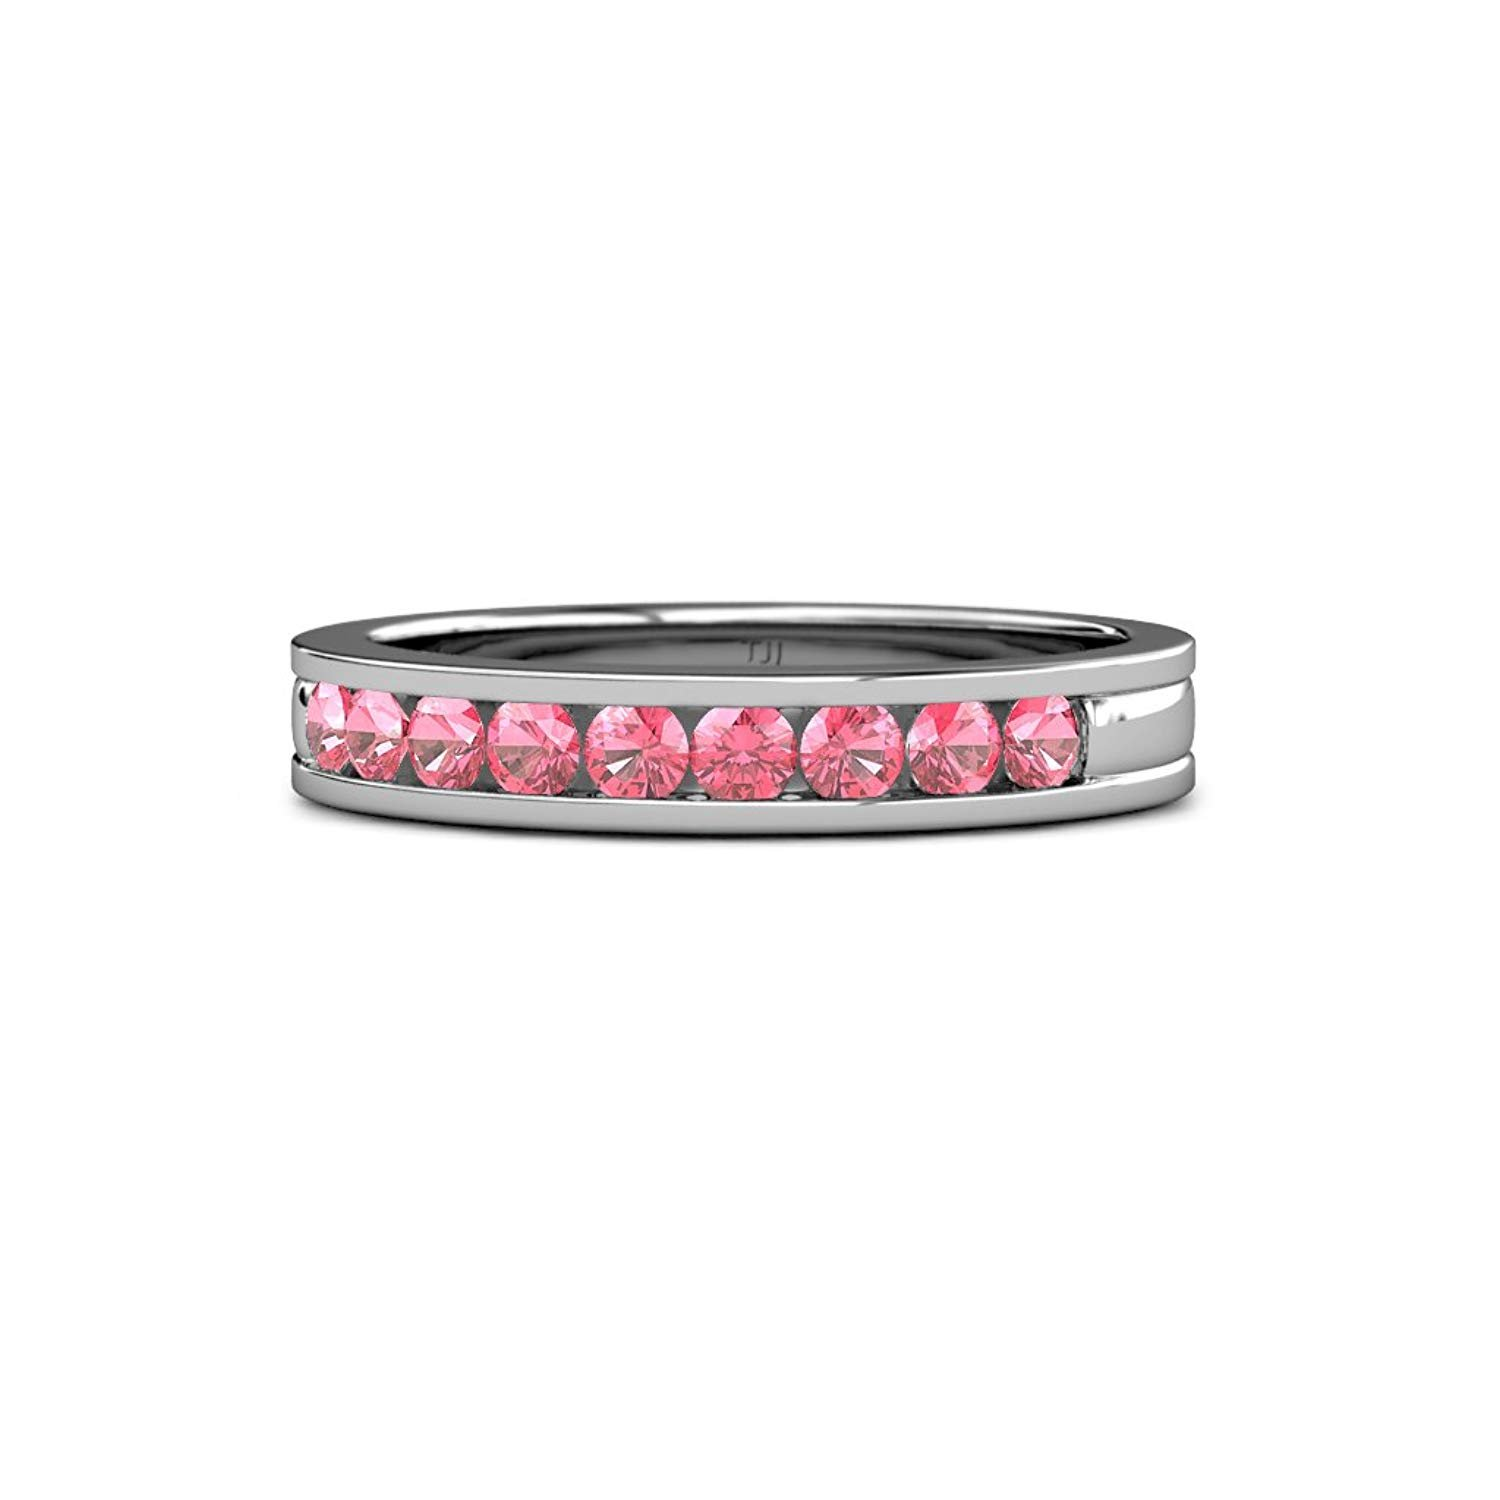 Pink Tourmaline 2.2mm 9 Stone Channel Set Wedding Band 0.27 Carat tw in 14K White Gold.size 8.5 by TriJewels